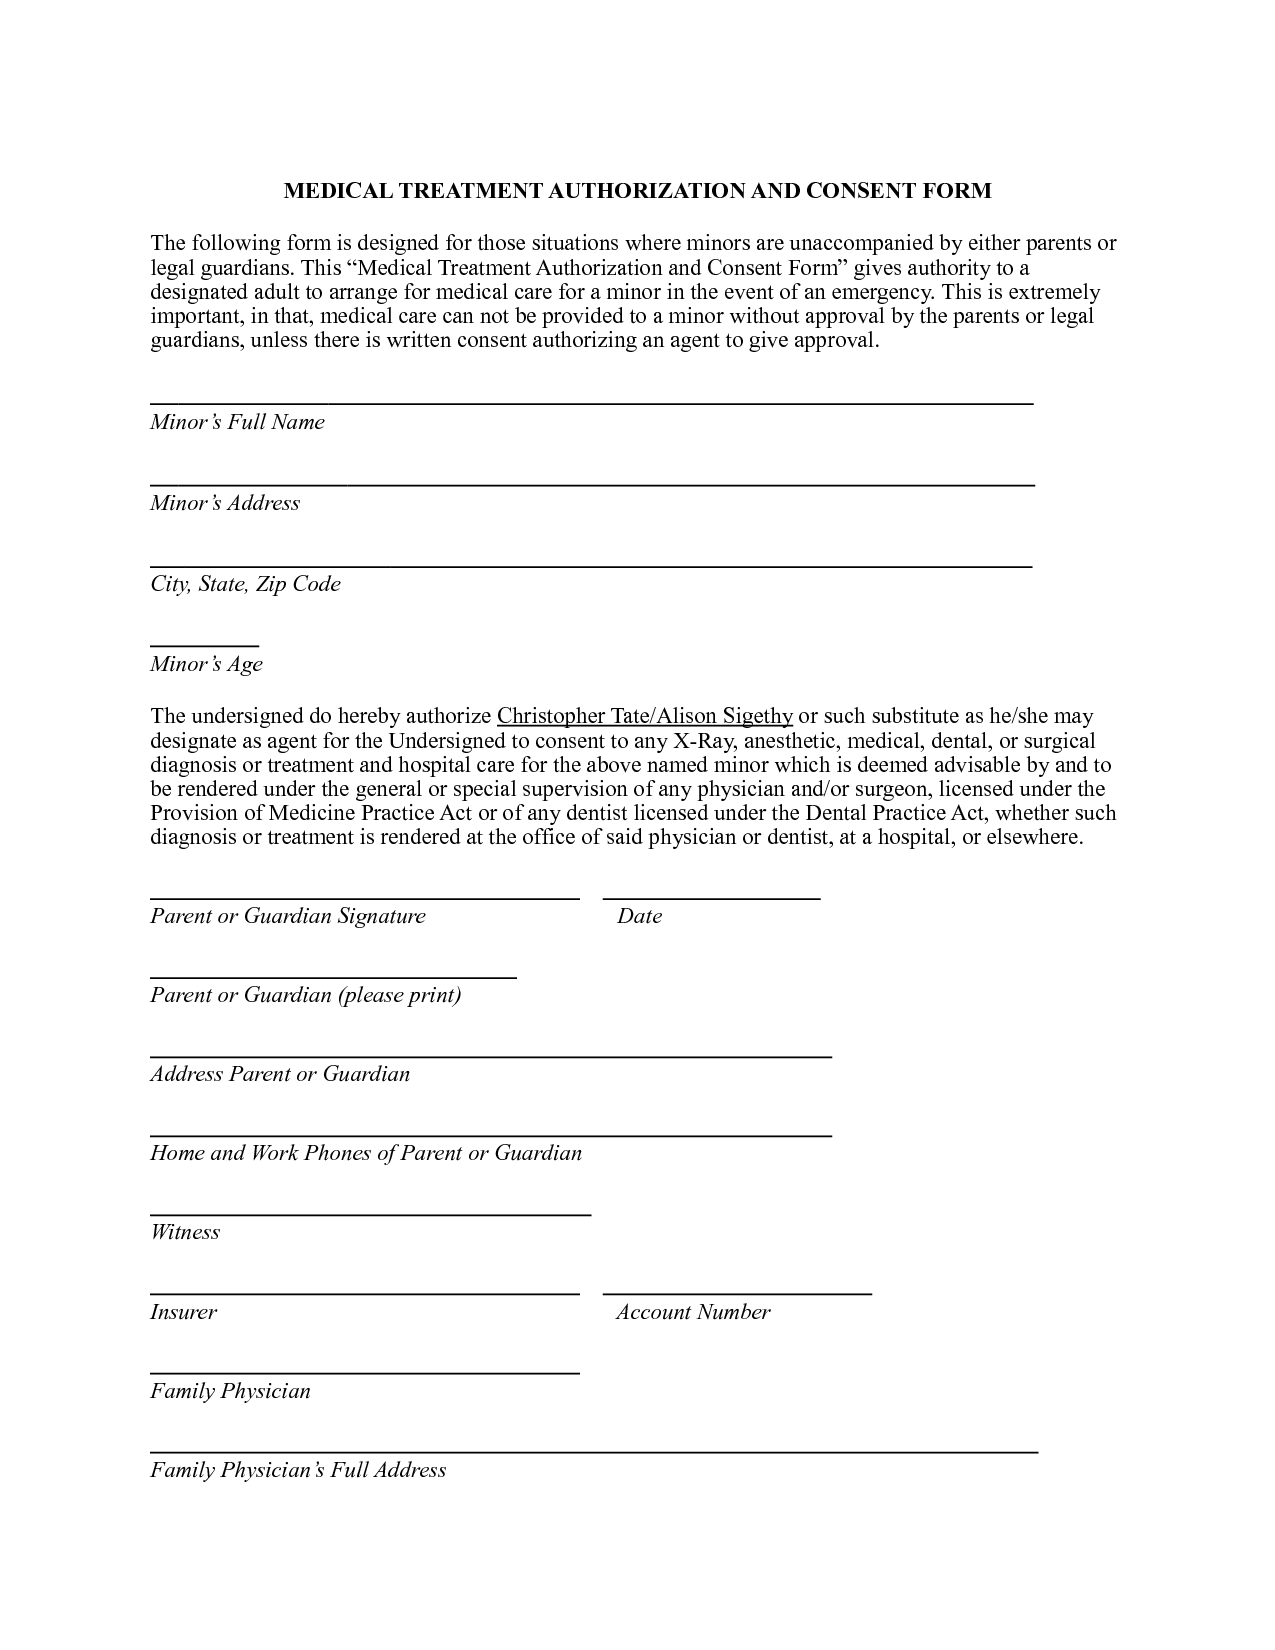 Medical authorization form tomsplans parental consent for Consent form template for children